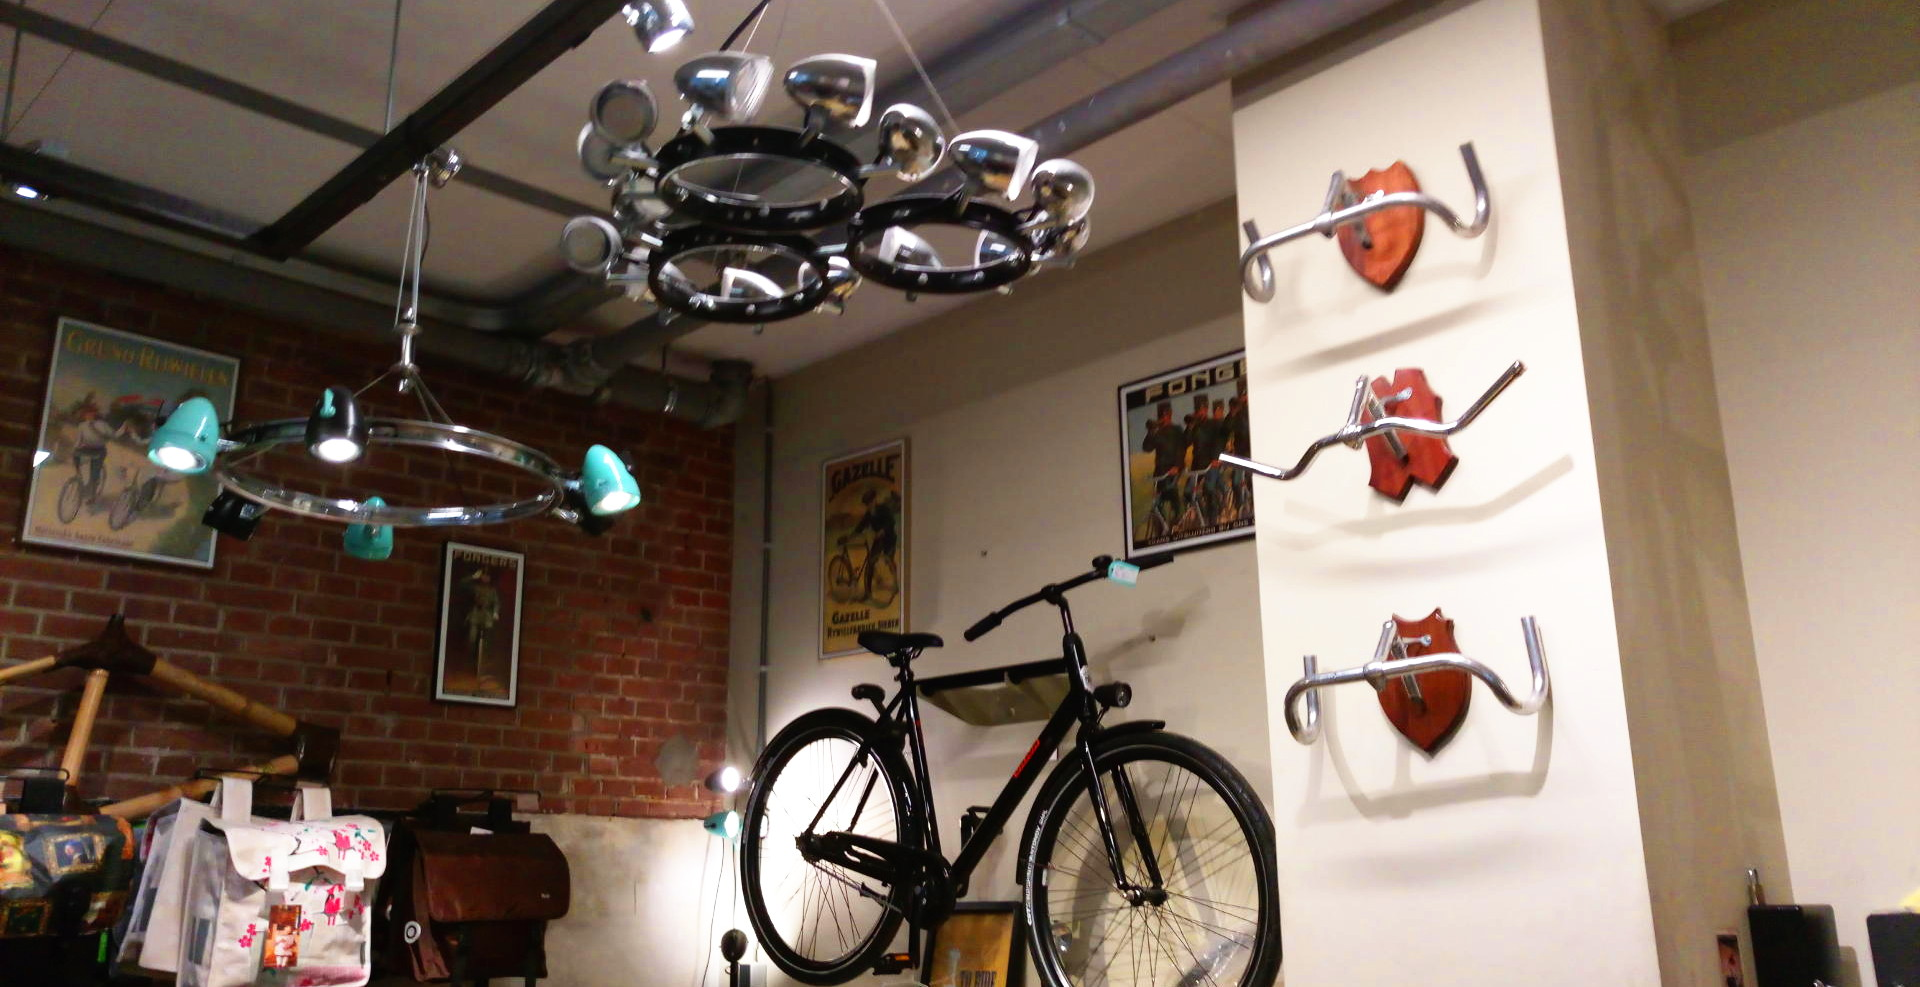 magasin-velo-amsterdam-recycle-deco-accessoires-velo-luminaire-lustres